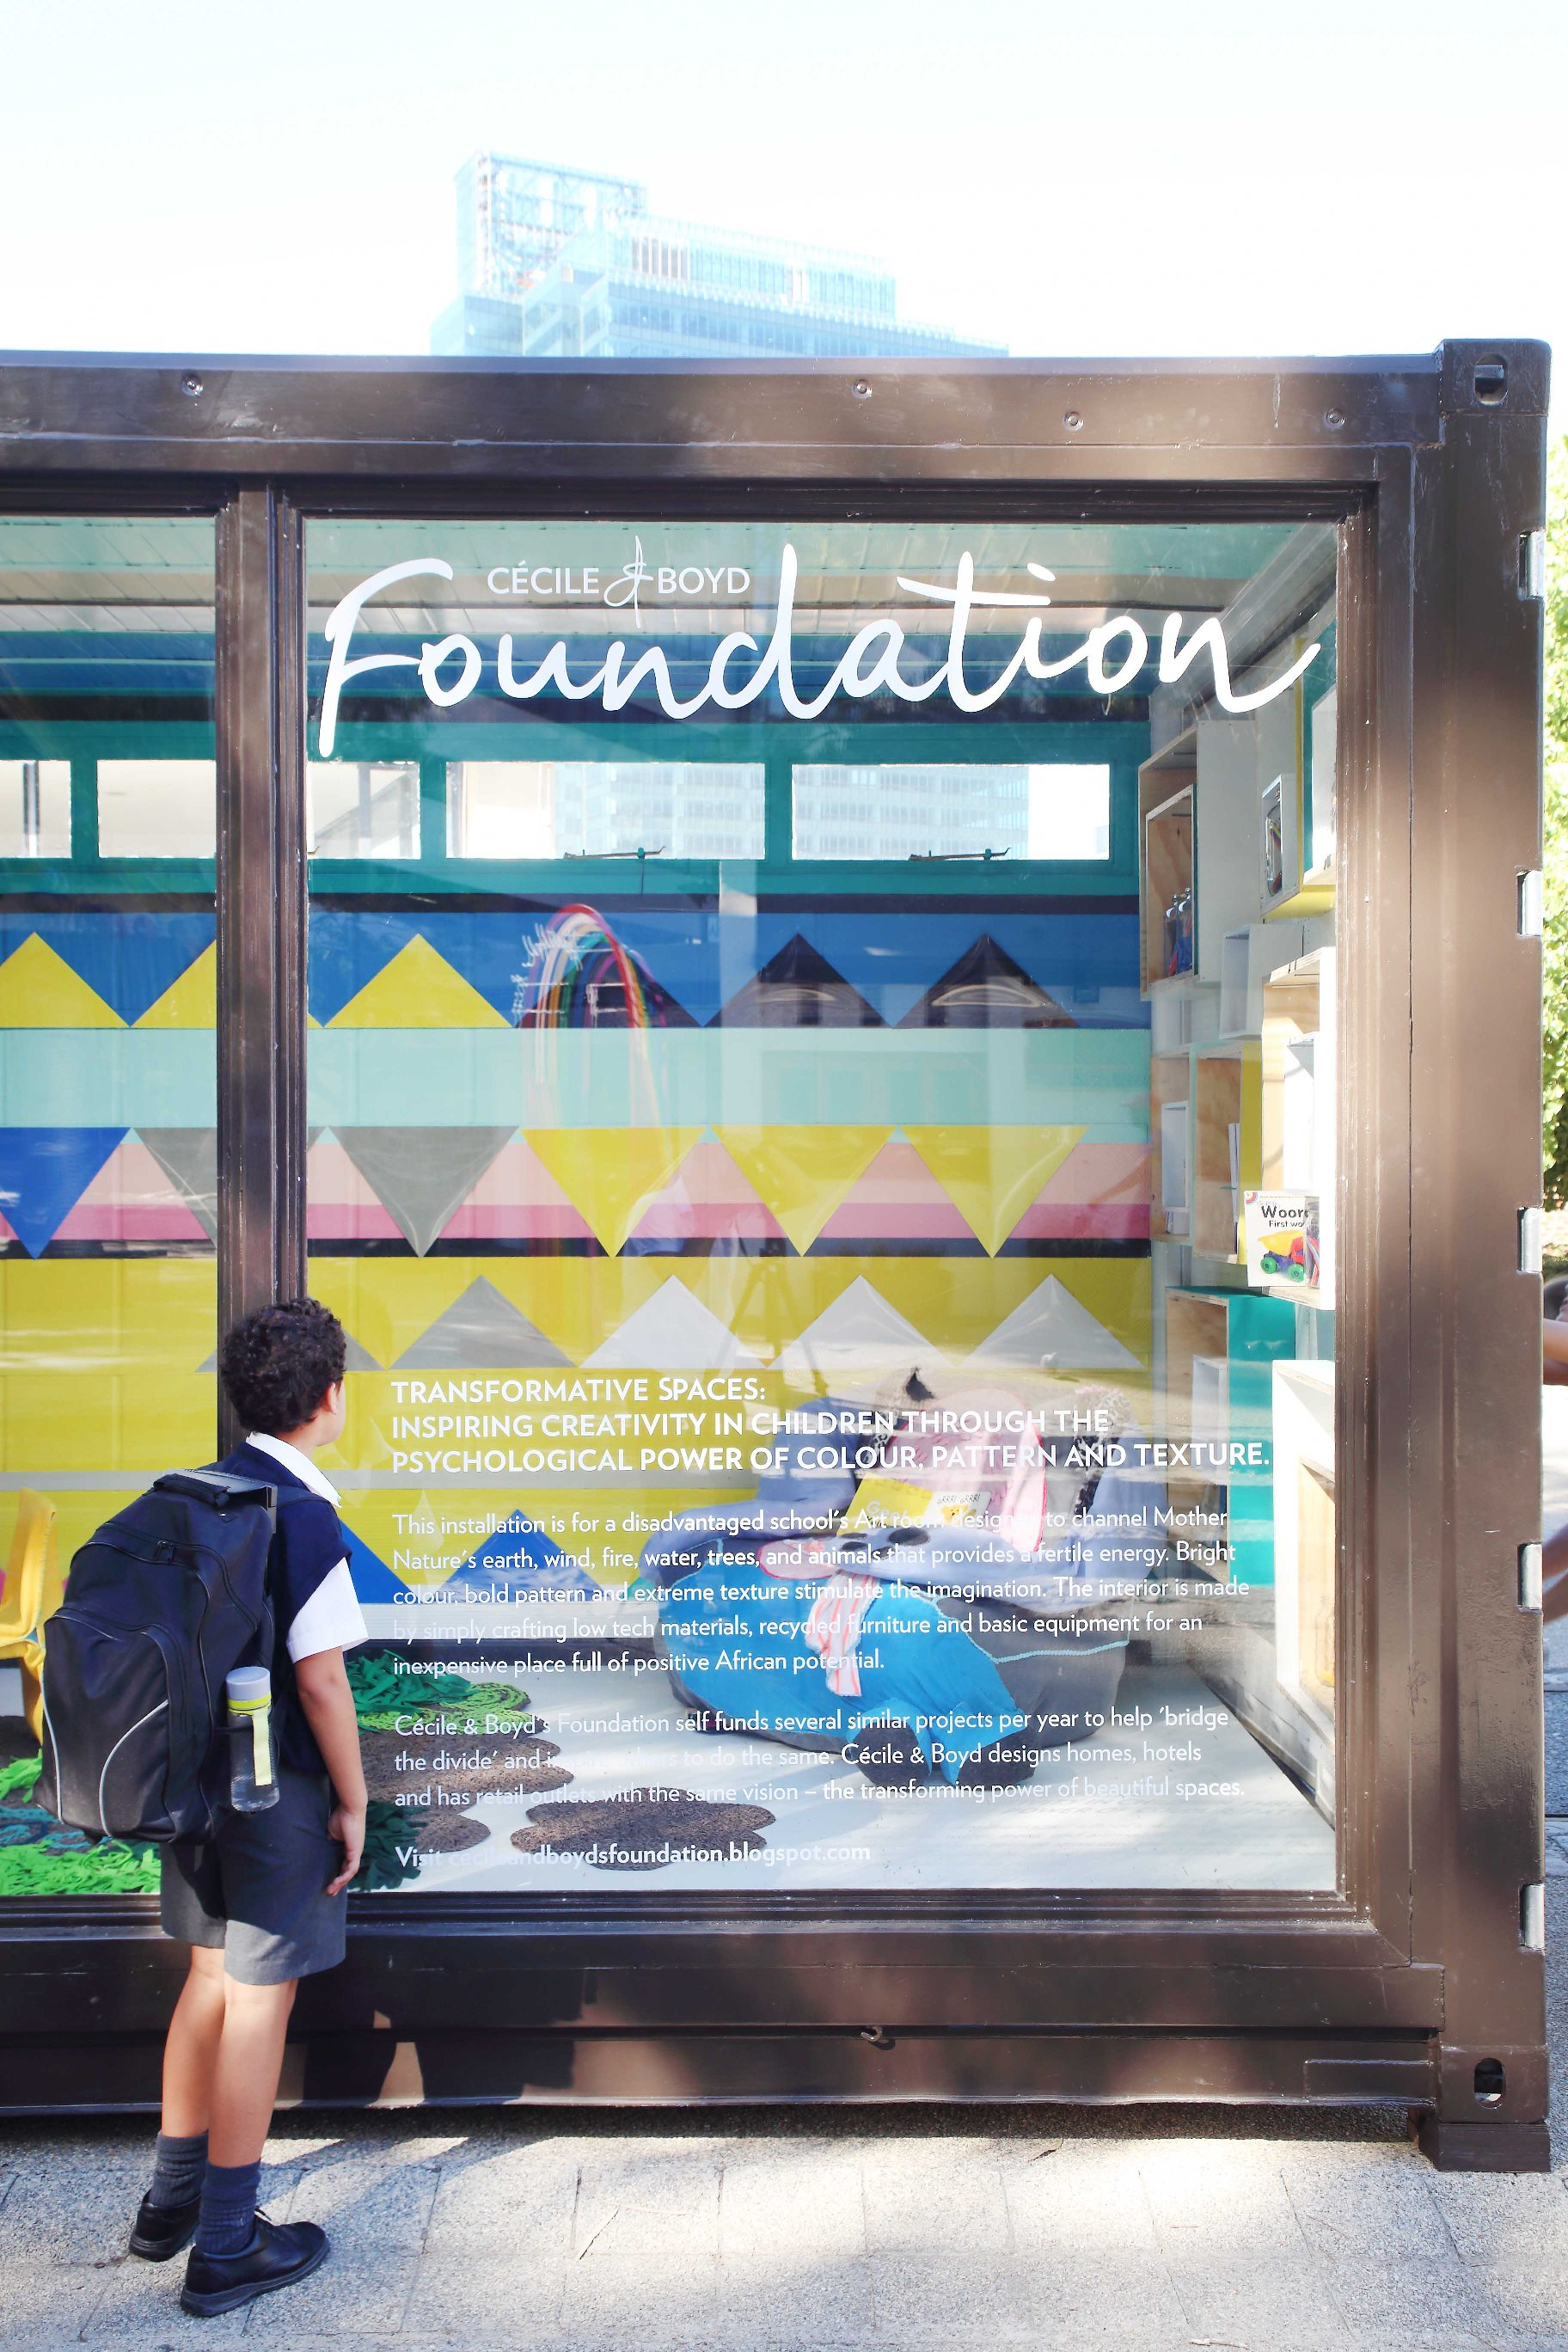 The Cécile & Boyd Foundation is involved in creating inspiring spaces for disadvantaged children in either refurbished containers or classrooms; this is our project for World Design Capital: The Power of Colour & Texture.